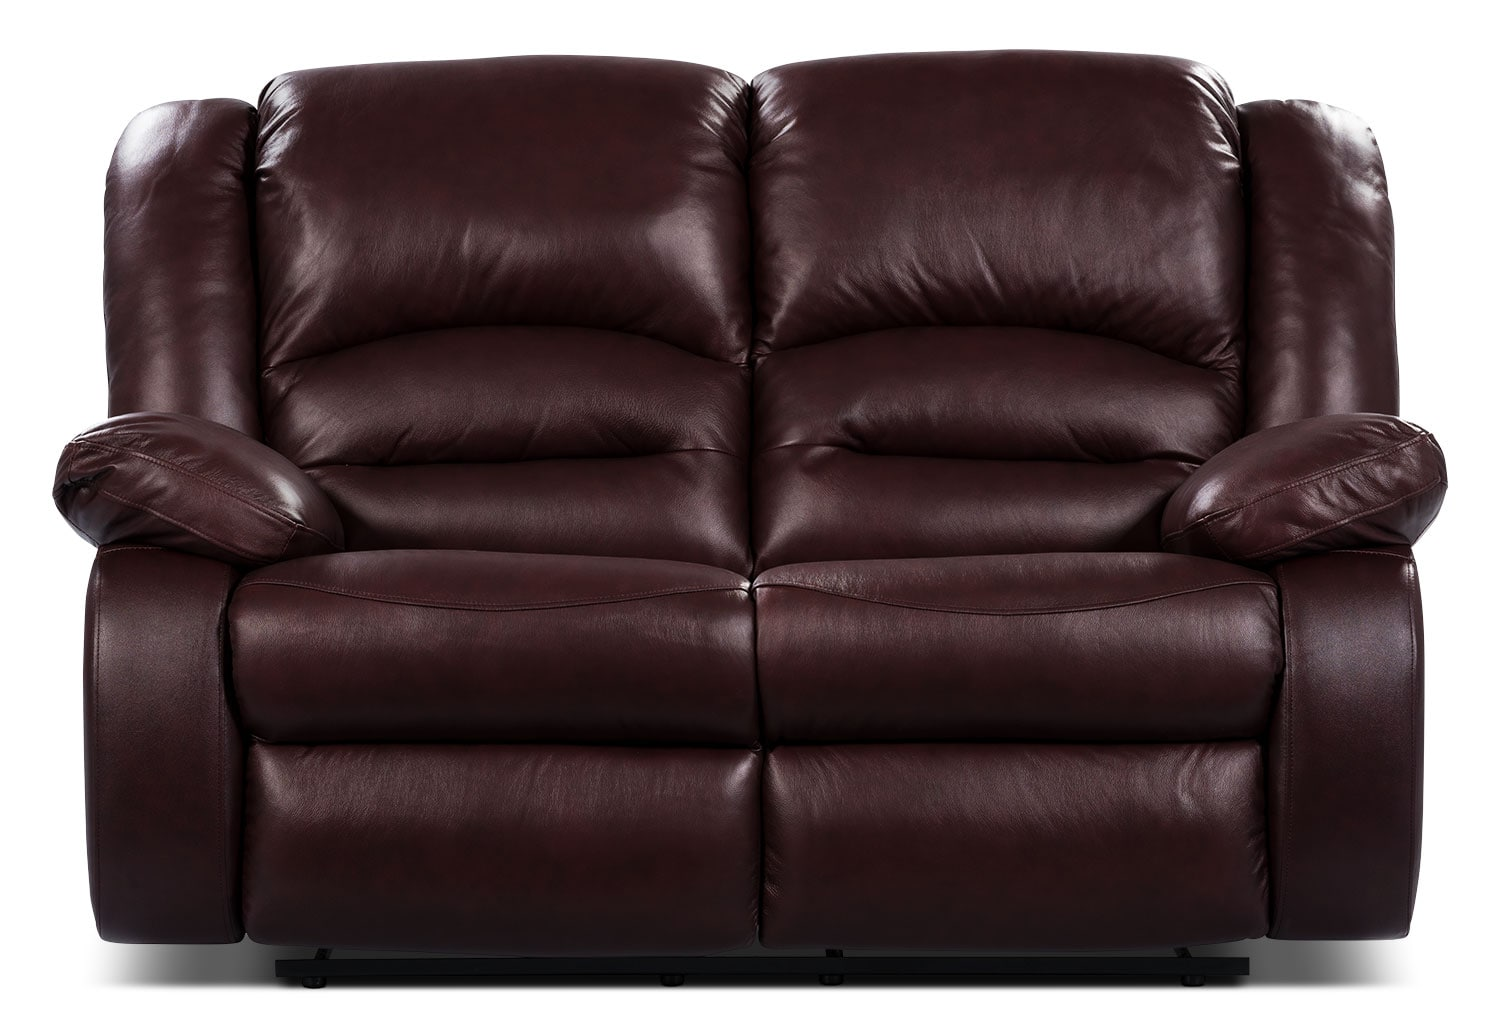 Living Room Furniture - Toreno Burgundy Genuine Leather Seating Power Reclining Loveseat